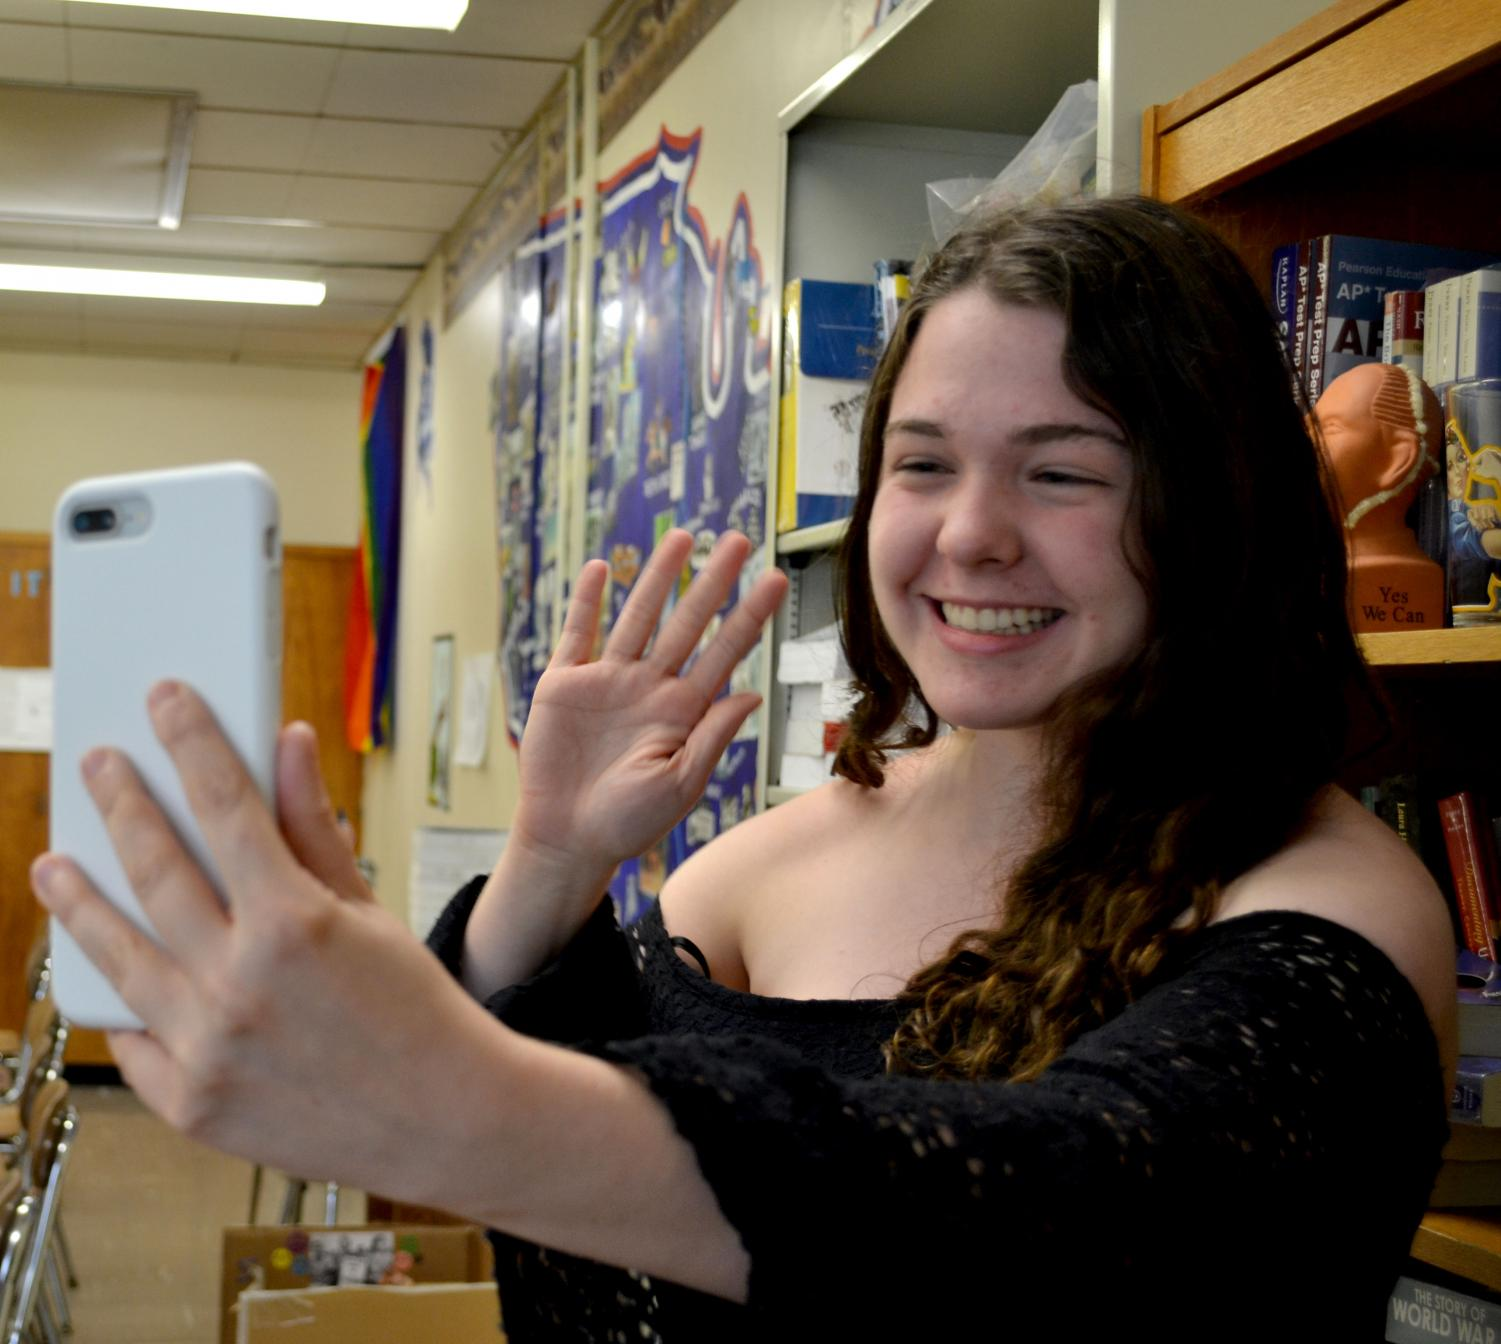 Evie Klein waves to her followers as she livestreams to teach AP U.S. History.